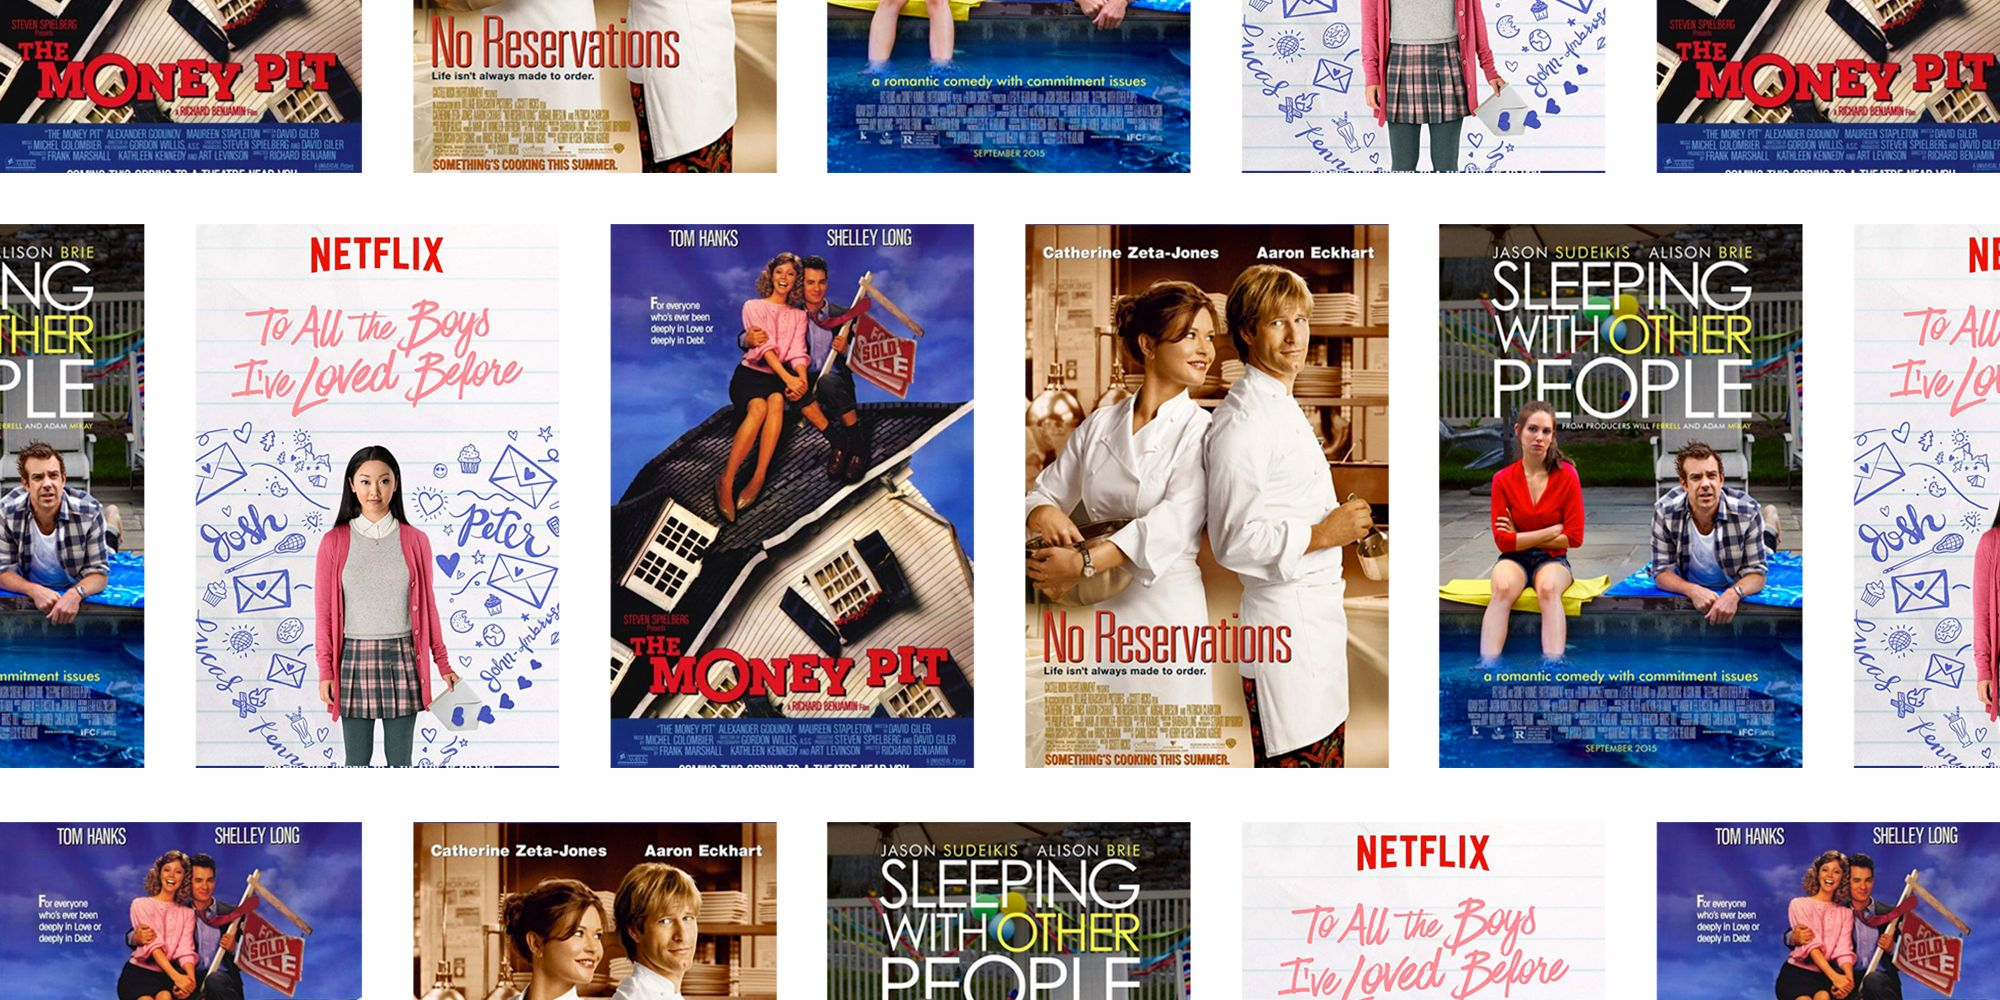 15 Best Romantic Comedies on Netflix - Top Rom Coms to